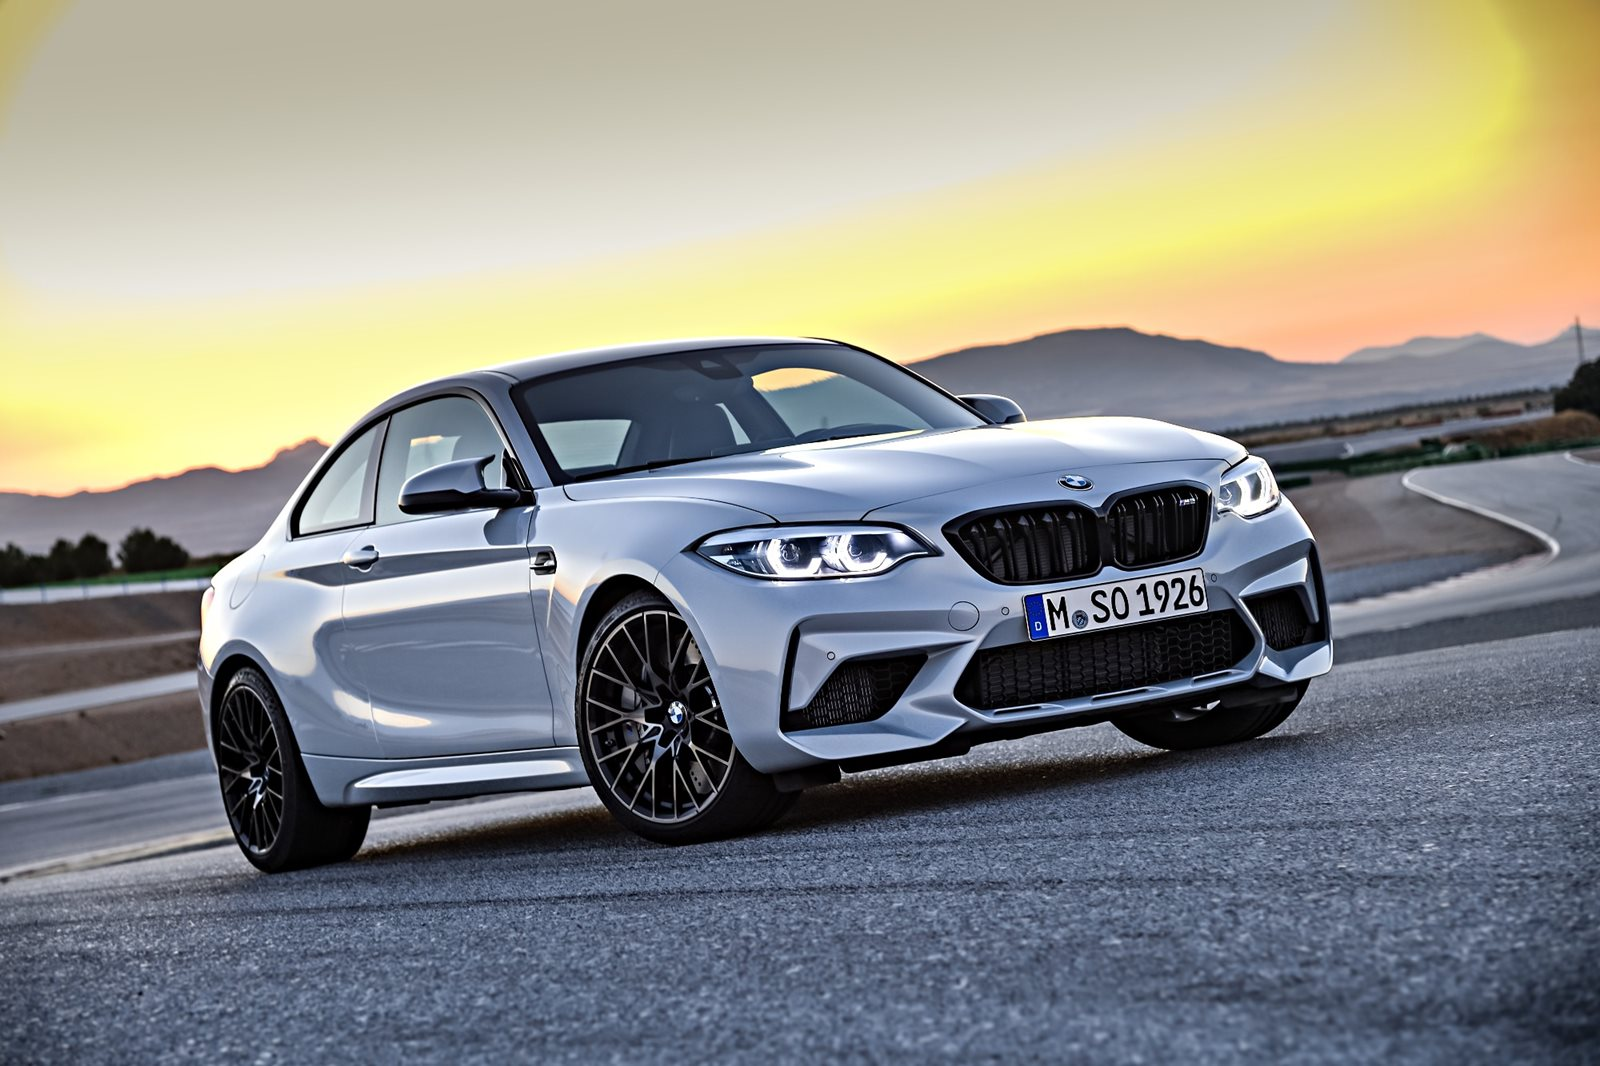 2019 Bmw M2 Competition Is Official With 405 Horsepower Carbuzz